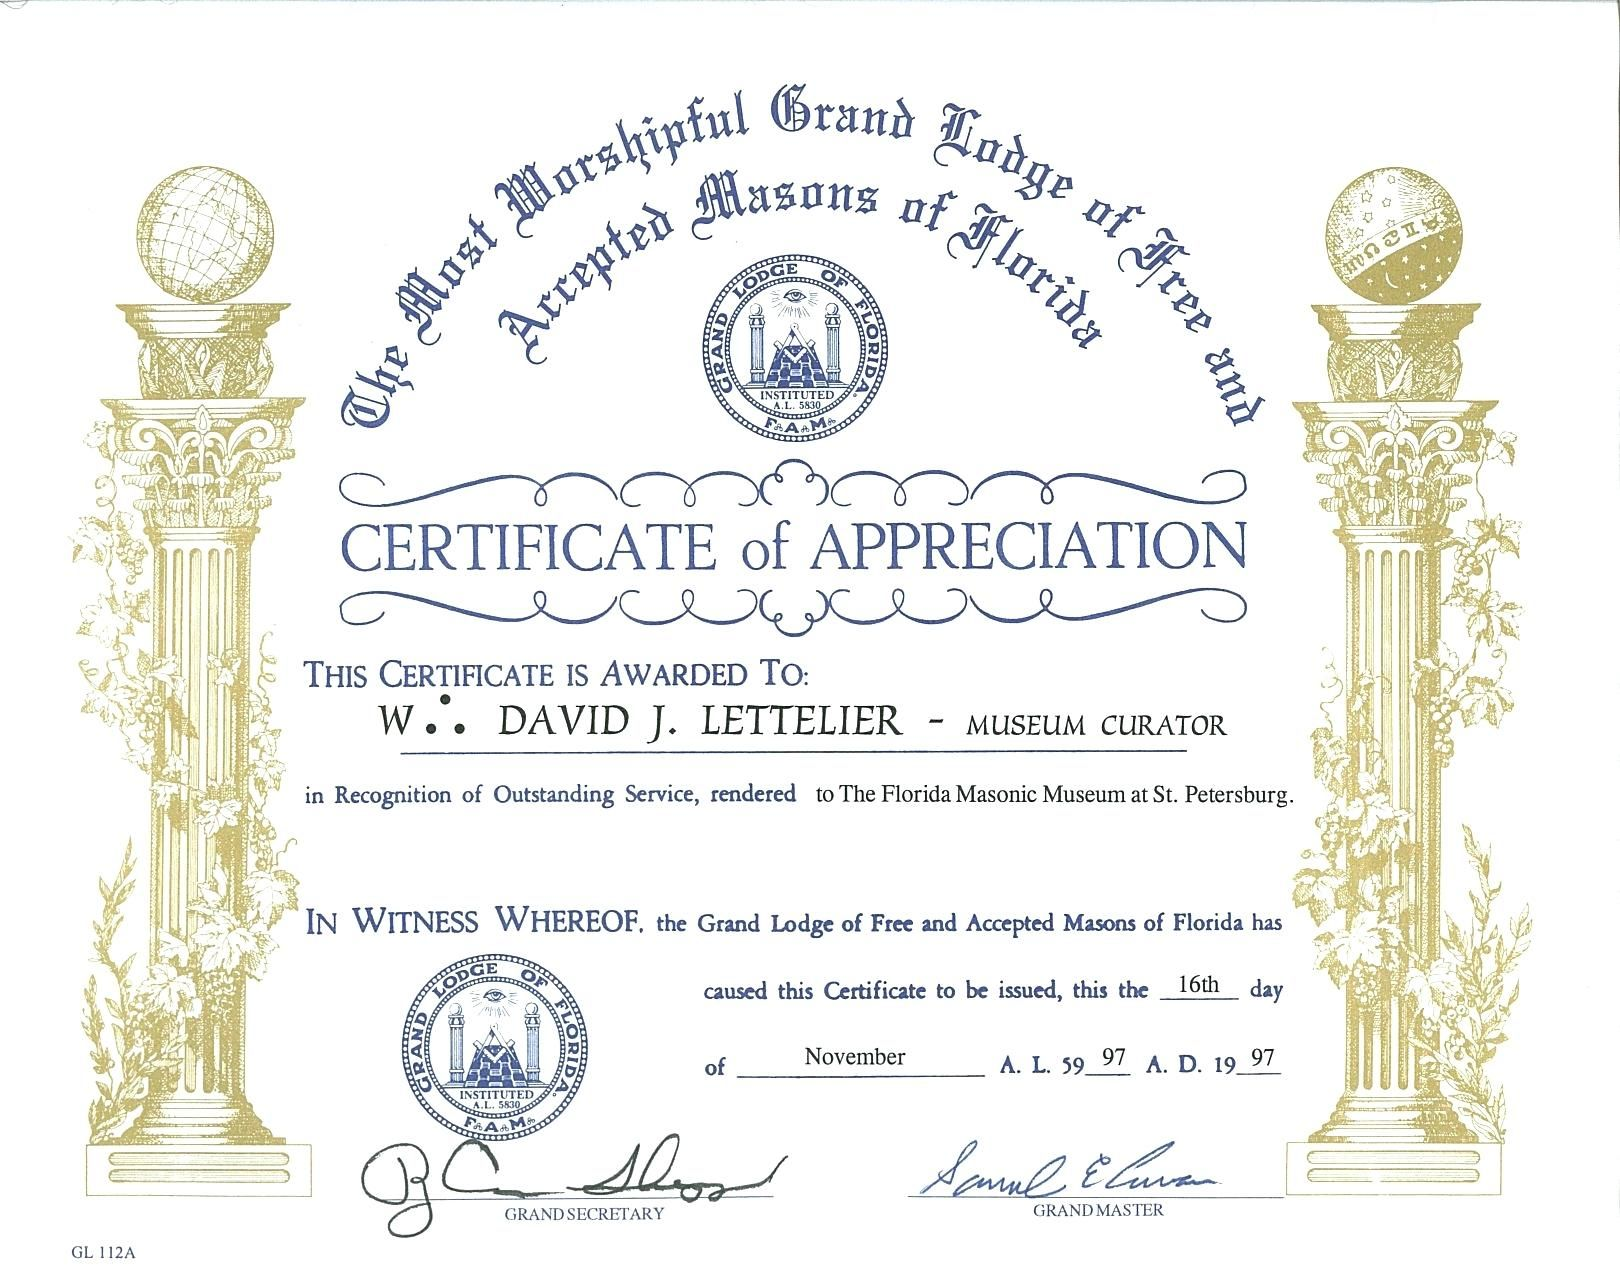 The Marvelous Masonic Certificate Template Free Certificatetemplatefree Throug Certificate Of Appreciation Certificate Templates Awards Certificates Template